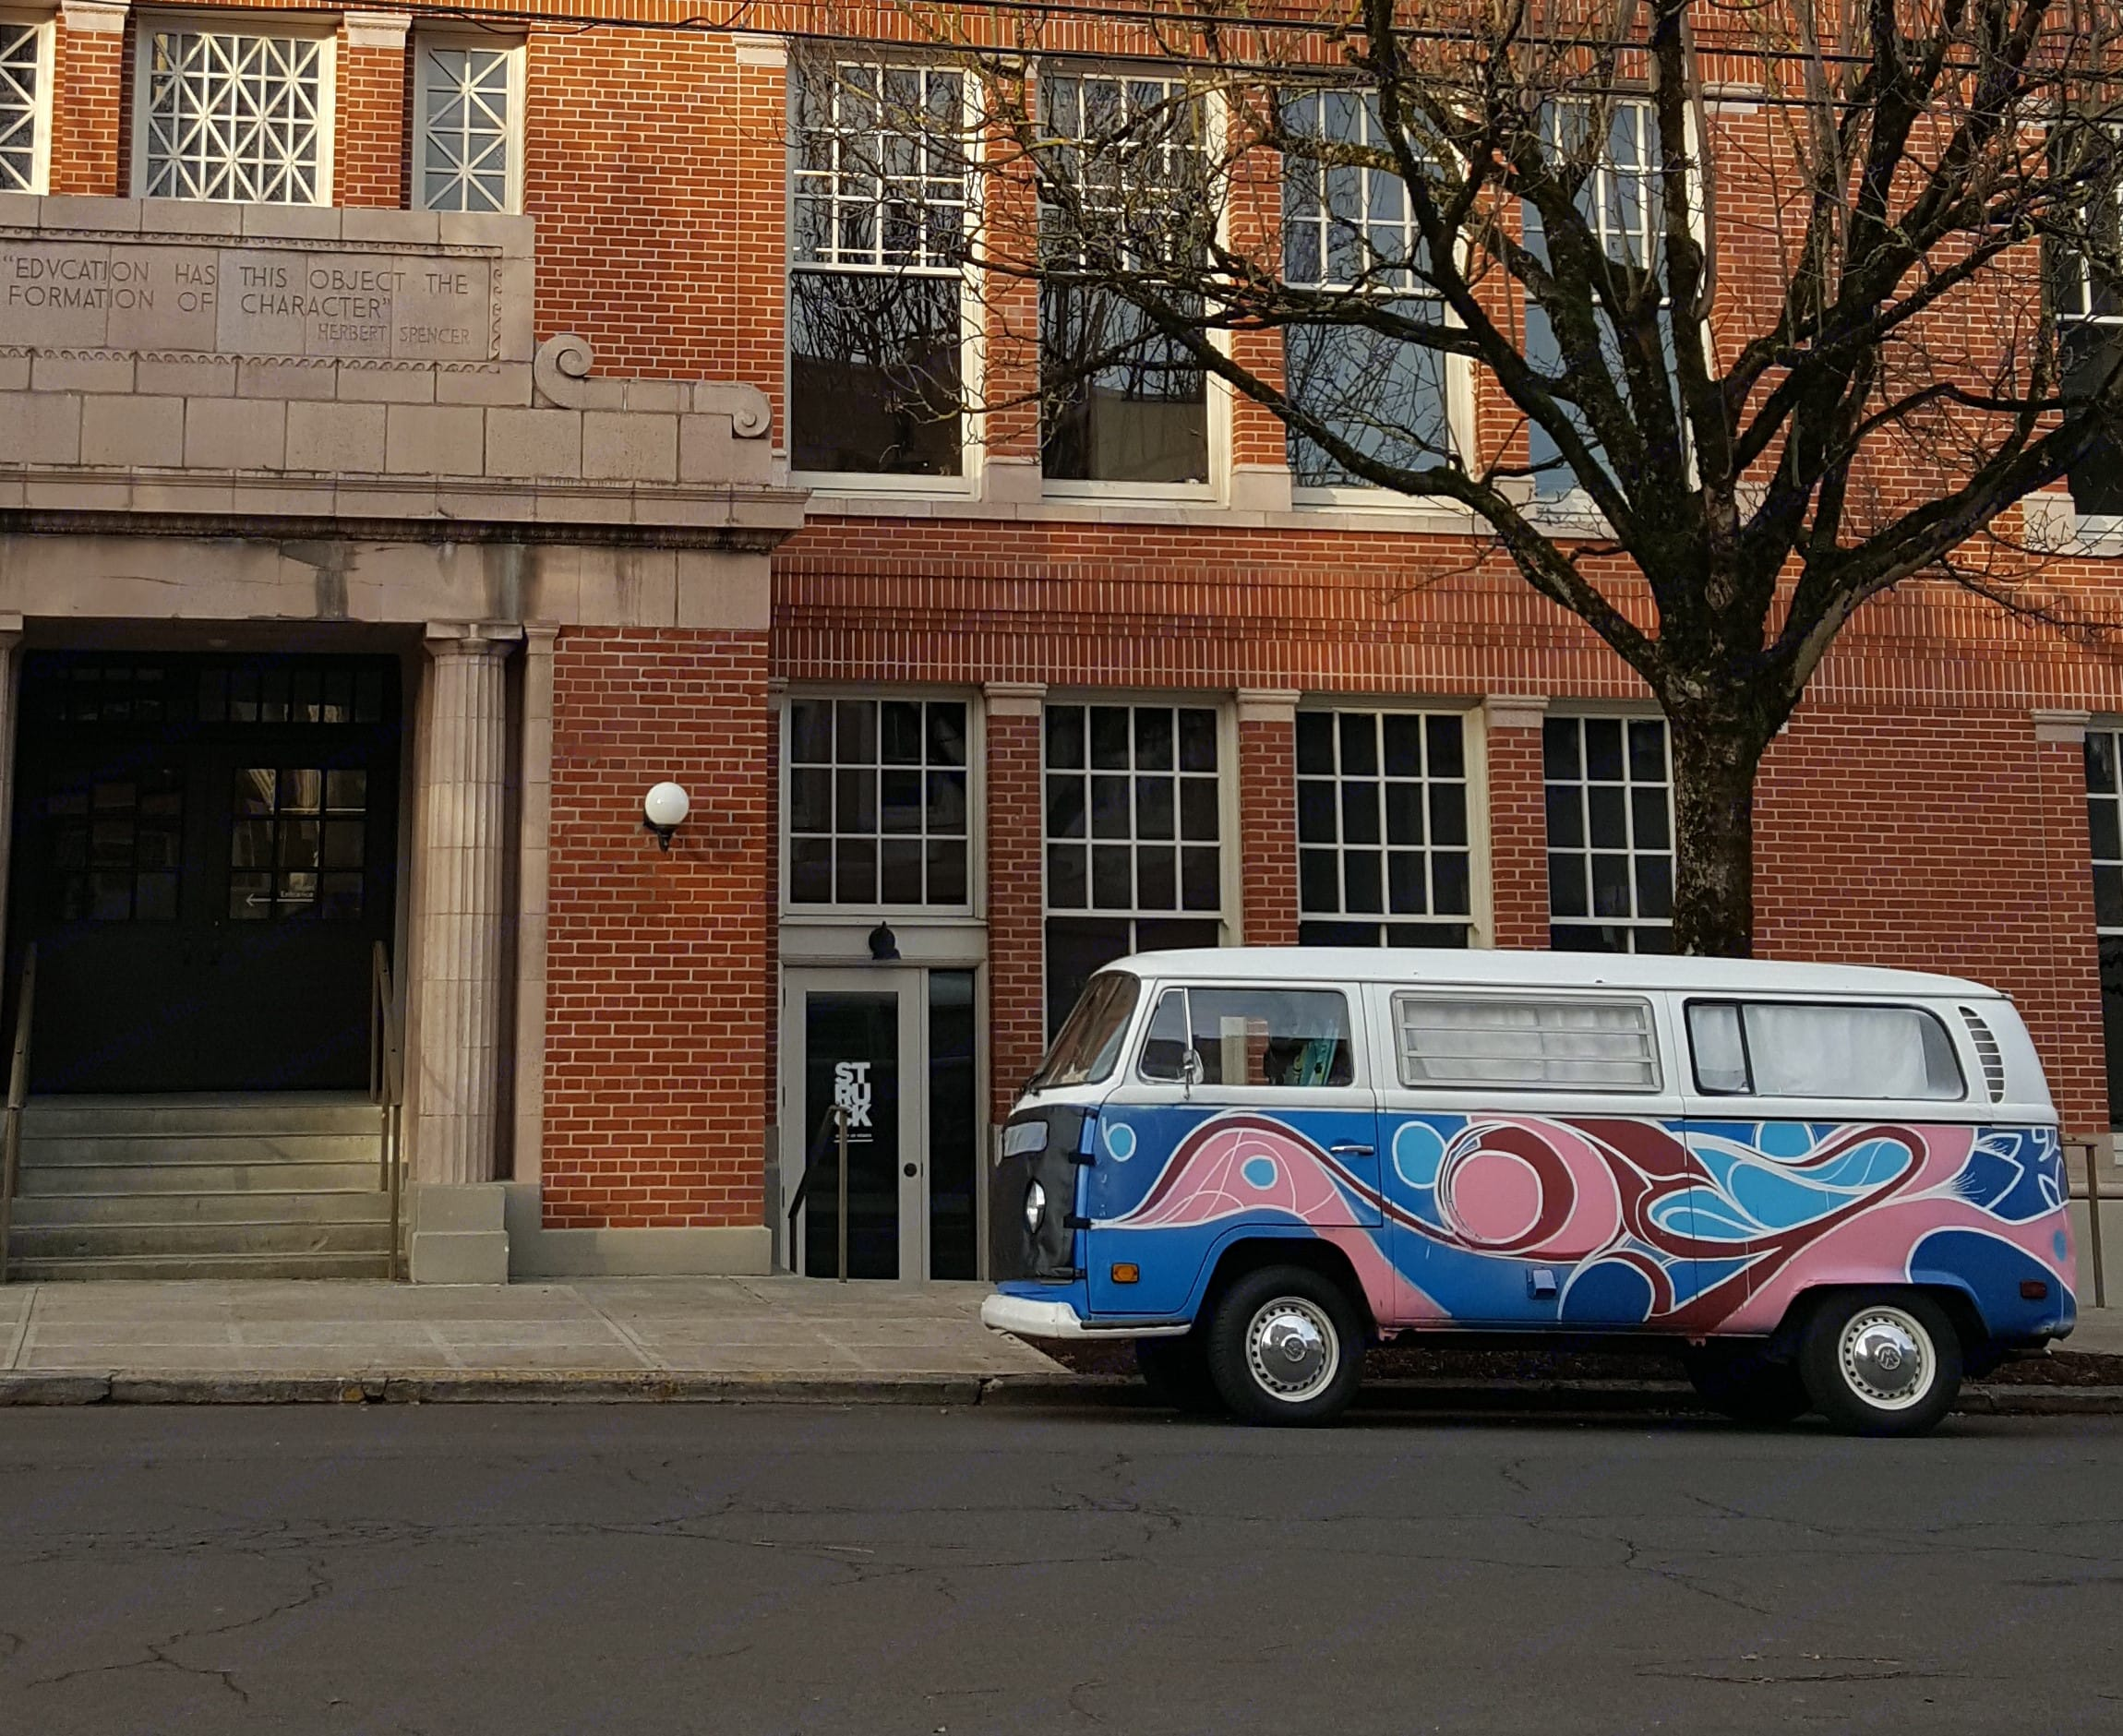 Blueray, your Vintage VW Bus, is pictured here in front of the iconic Revolution Hall.  Contact me today so you can have a VW Bus Adventure Tomorrow. . Volkswagen Westfalia 1971